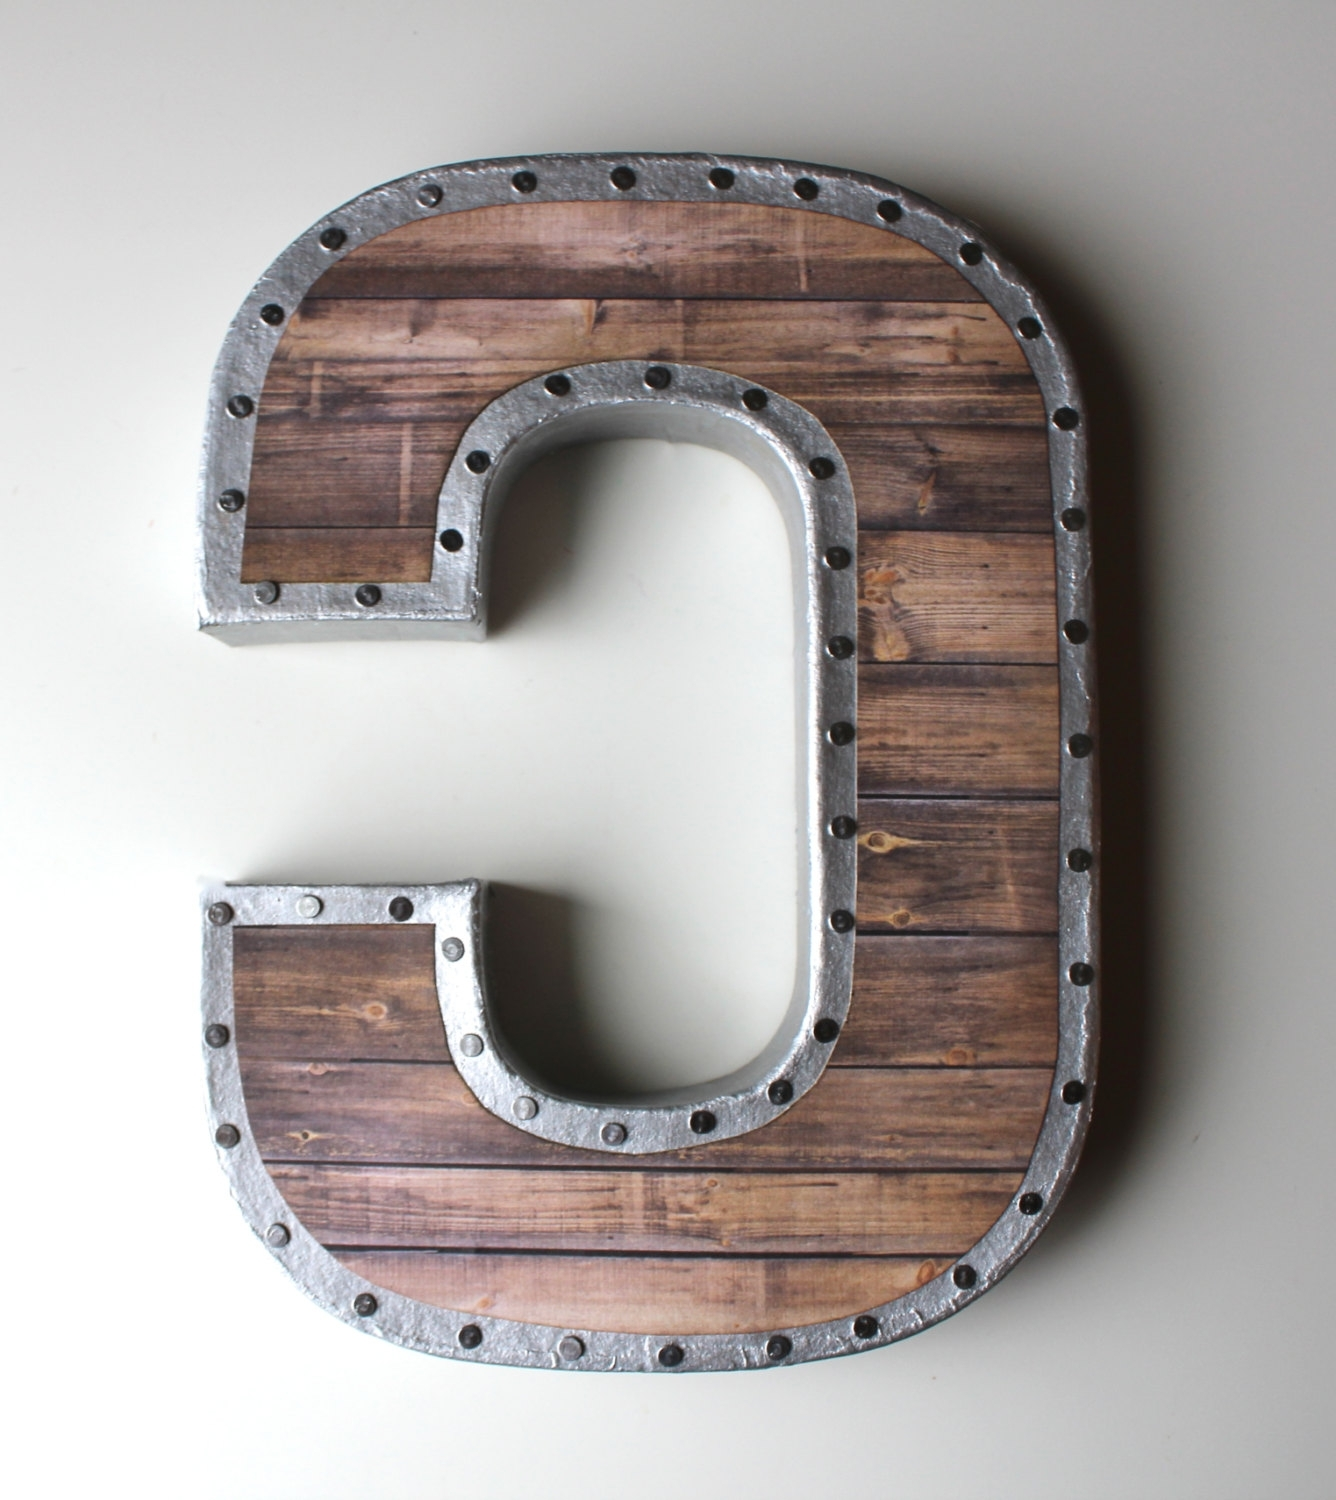 Vintage Metal Letters For The Wall – Blogtipsworld For Trendy Metal Letter Wall Art (View 18 of 20)